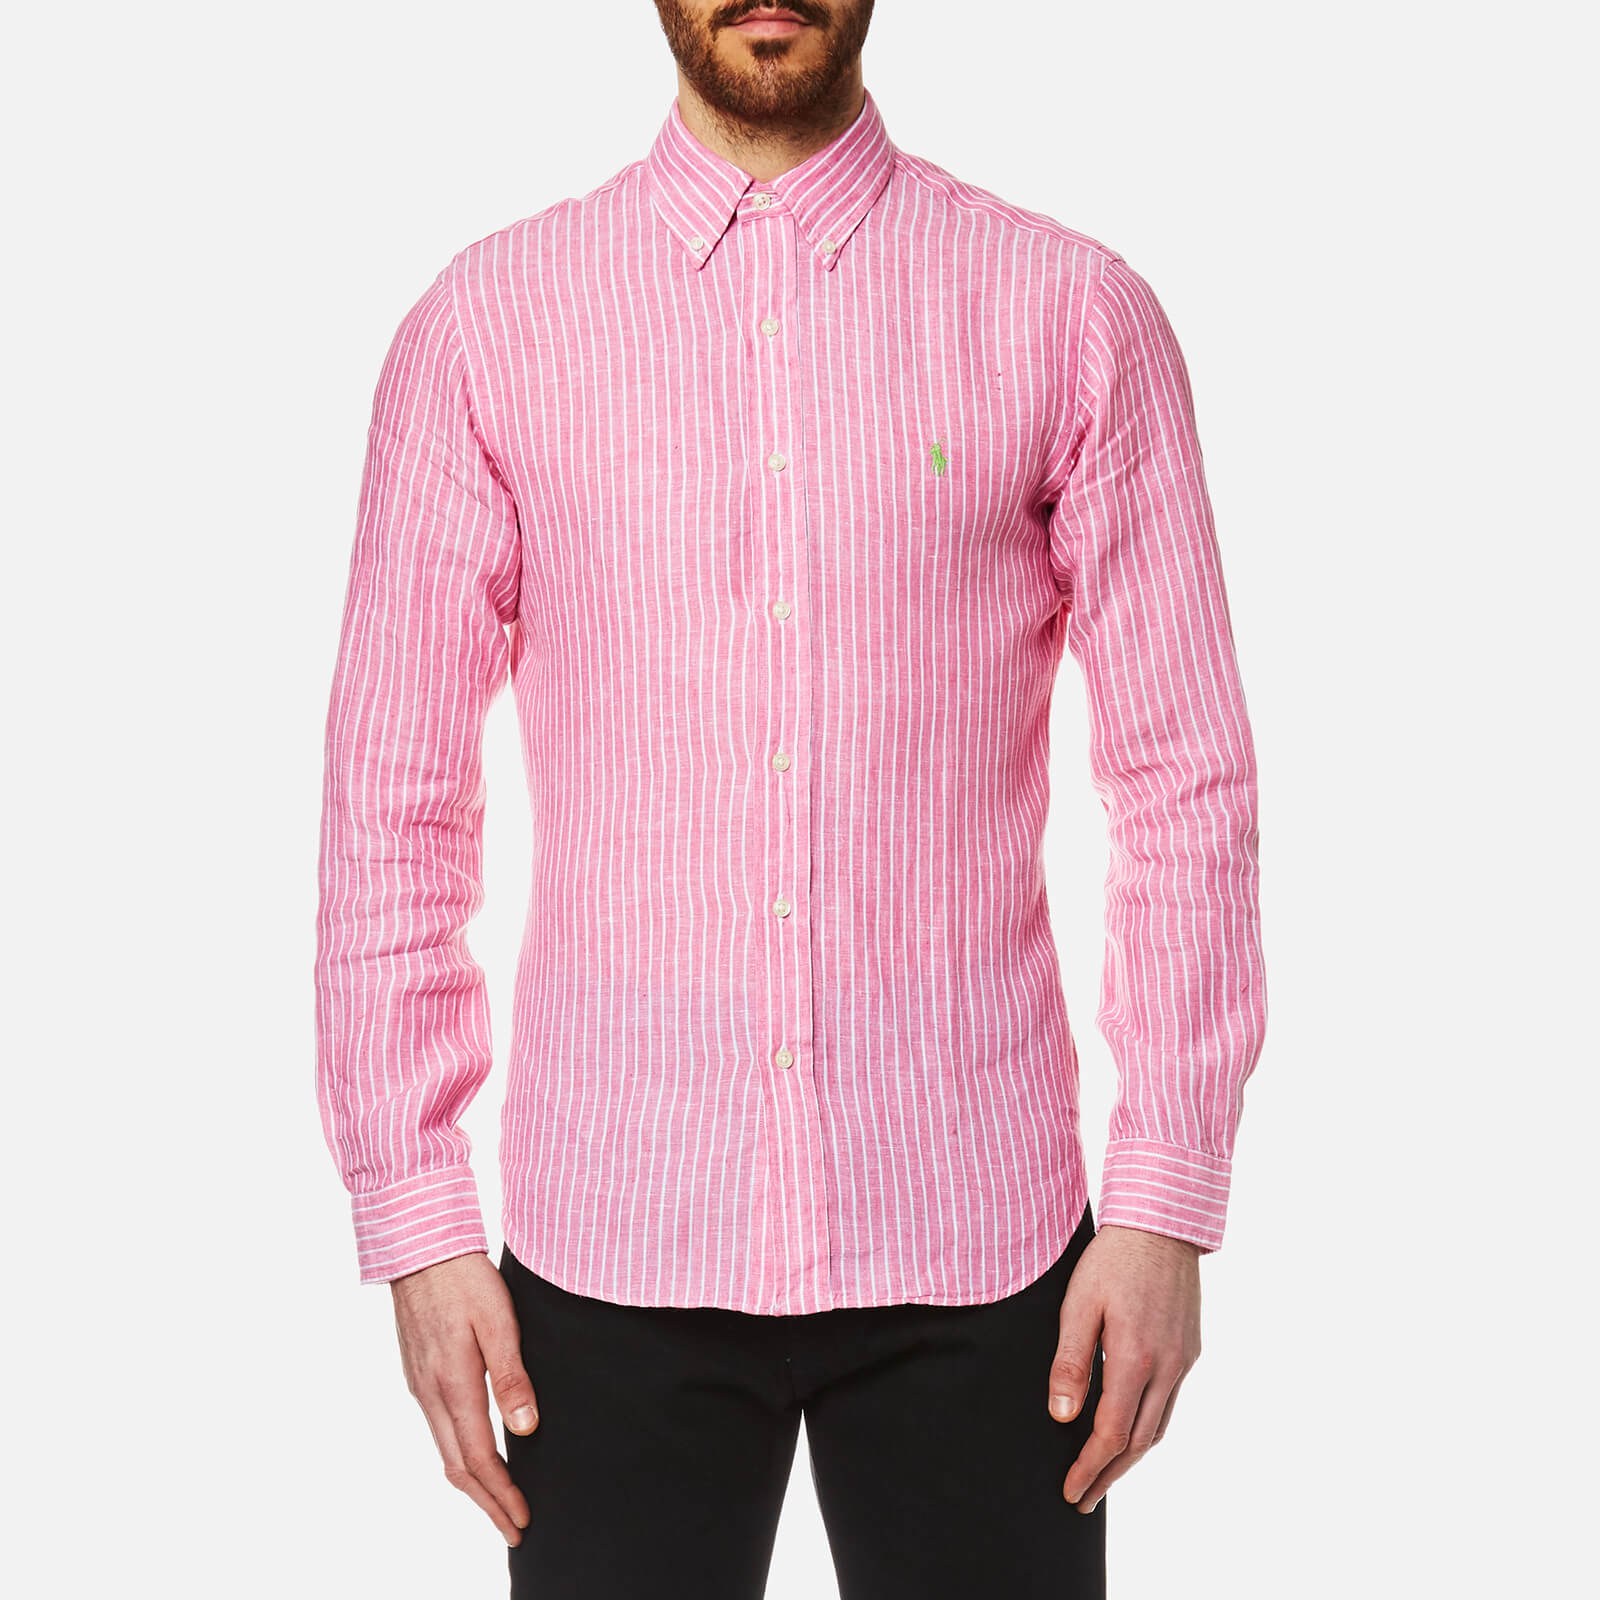 a9591f263 Polo Ralph Lauren Men's Stripe Slim Fit Long Sleeve Linen Shirt - Pink - Free  UK Delivery over £50